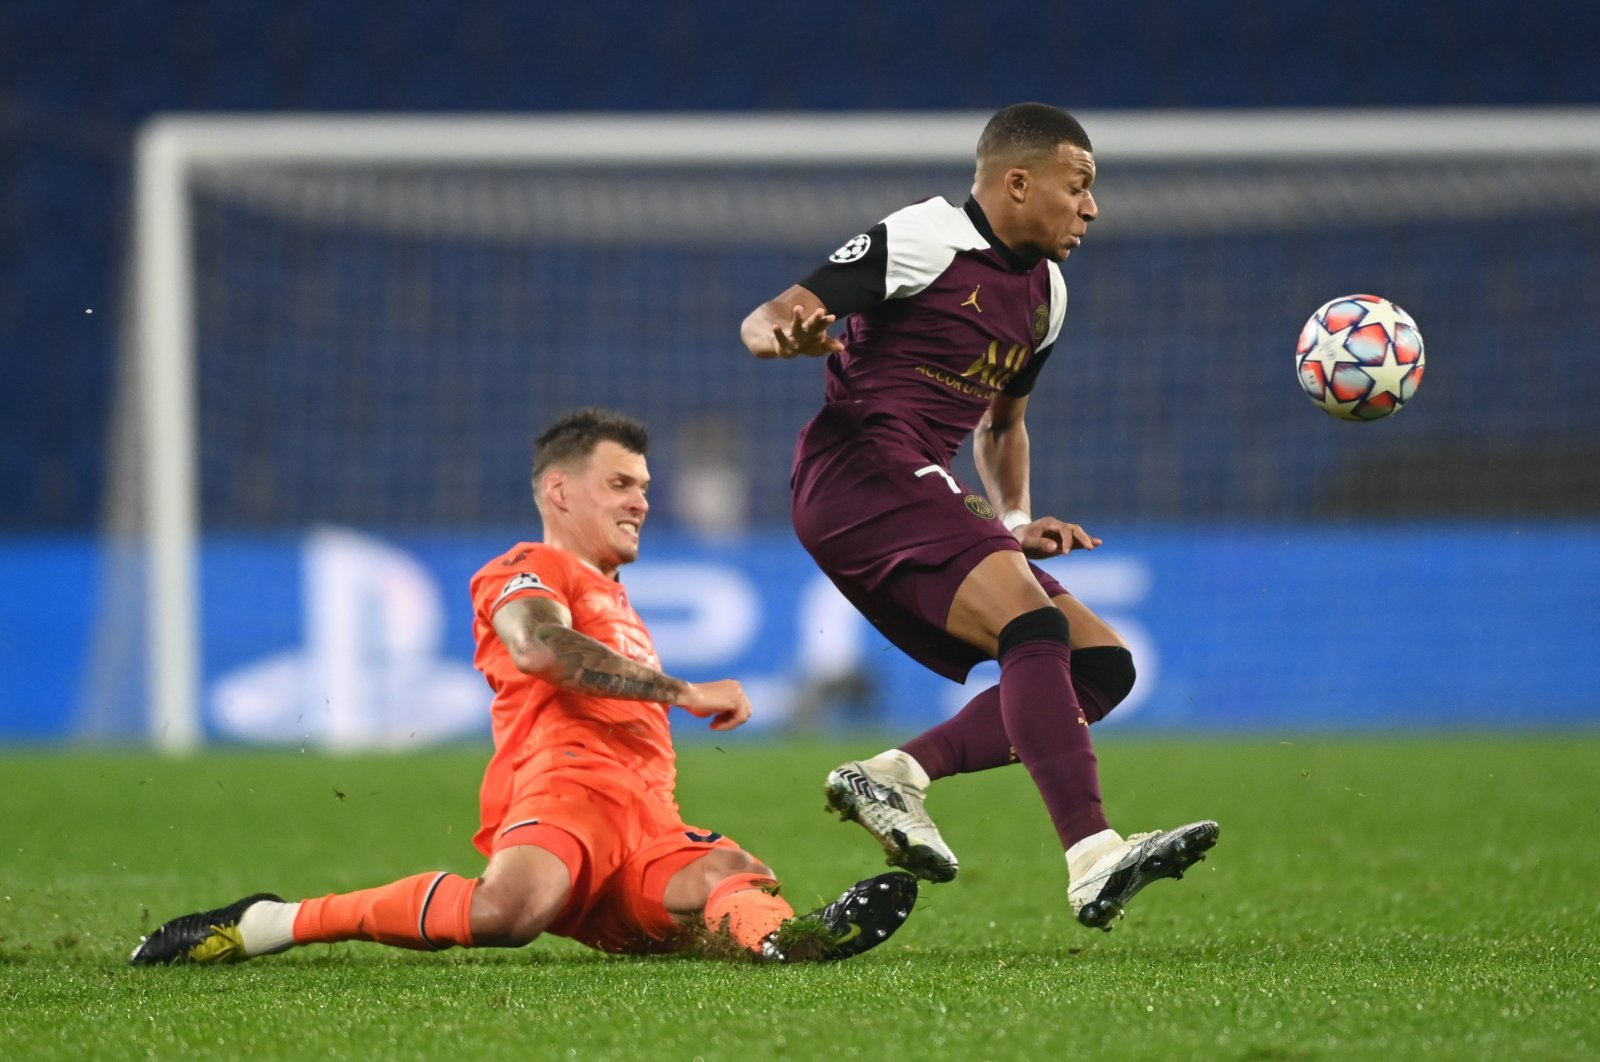 Istanbul Başaksehir's Martin Skrtel in action with Paris Saint-Germain's Kylian Mbappe in a Champions League Group H game, in Istanbul, Turkey, Oct. 28, 2020. (Reuters Photo)